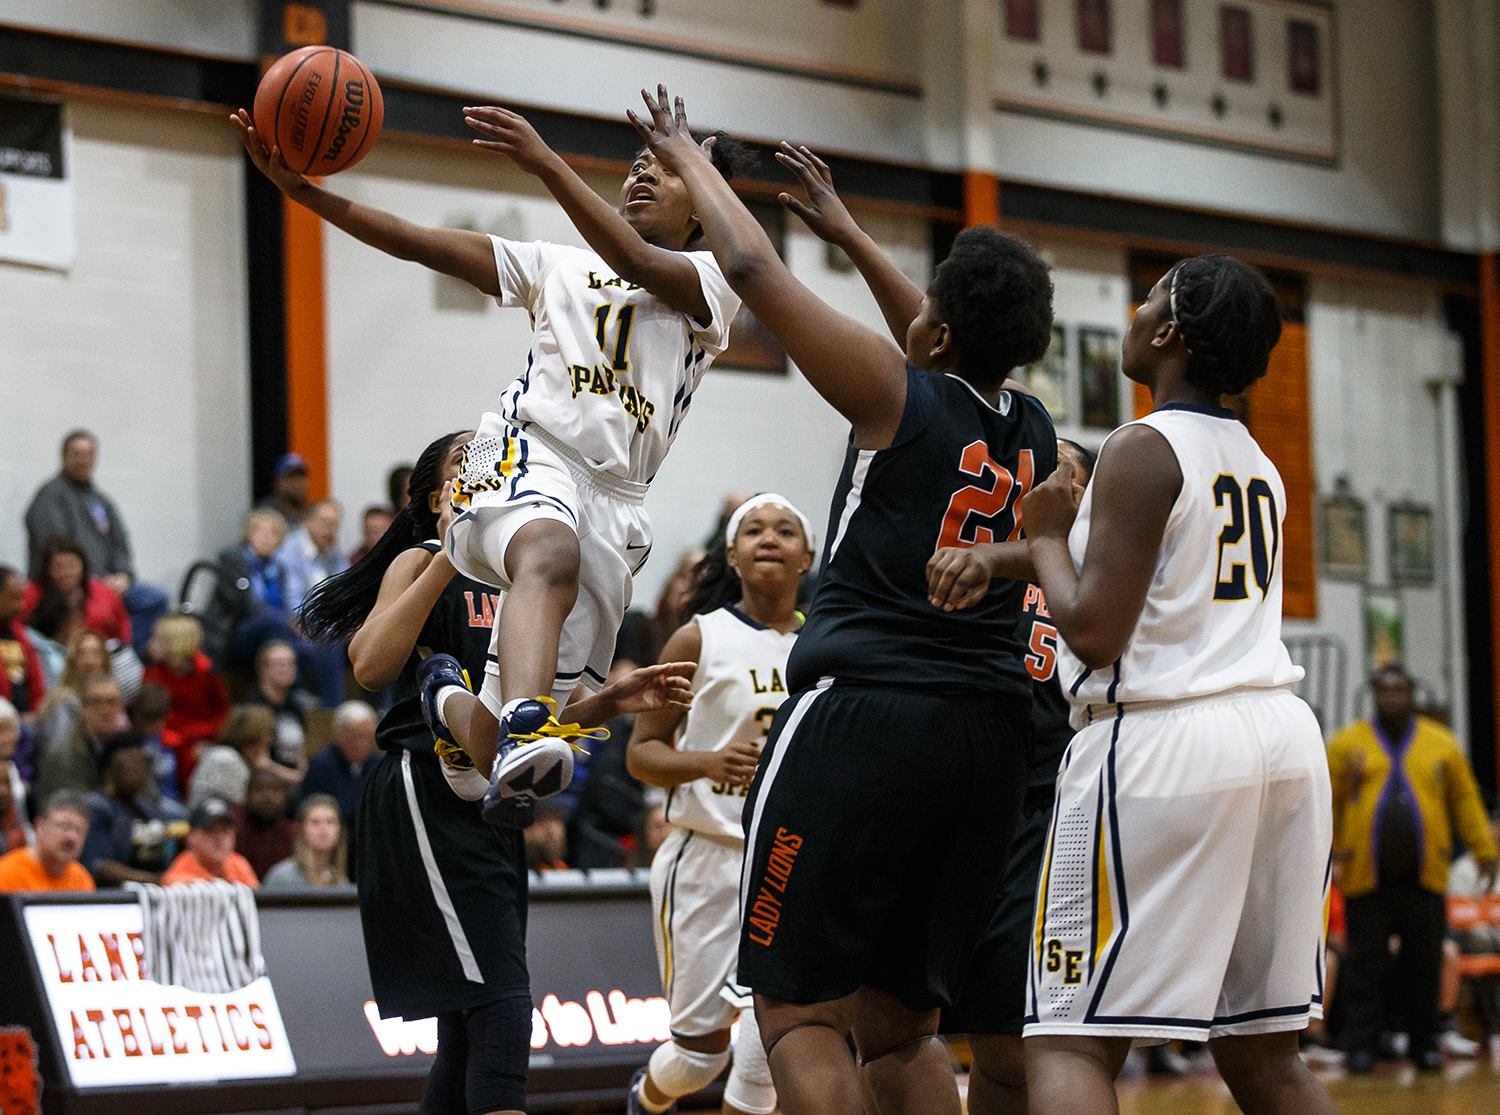 Southeast's Shelby Williams (11) goes up for a lay-up against Lanphier in the fourth quarter during the third place game of the Girls City Basketball Tournament at Lanphier High School, Thursday, Jan. 26. Justin L. Fowler/The State Journal-Register